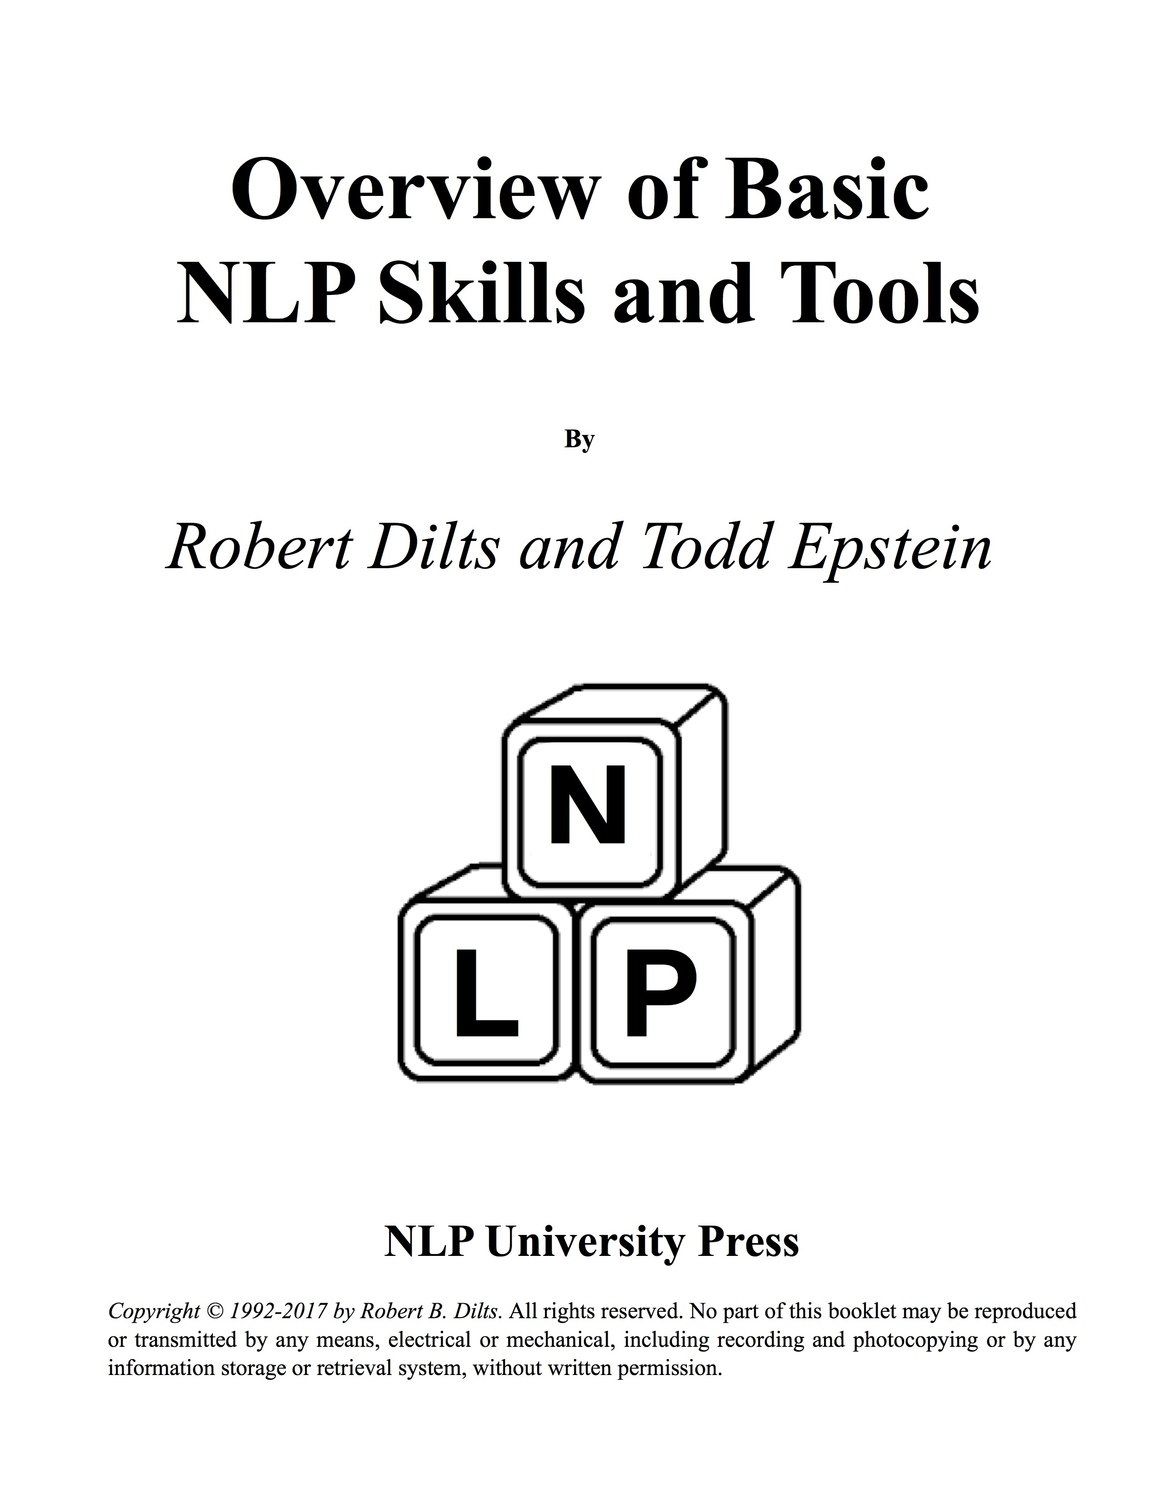 Overview of Basic NLP Skills and Tools [Booklet]